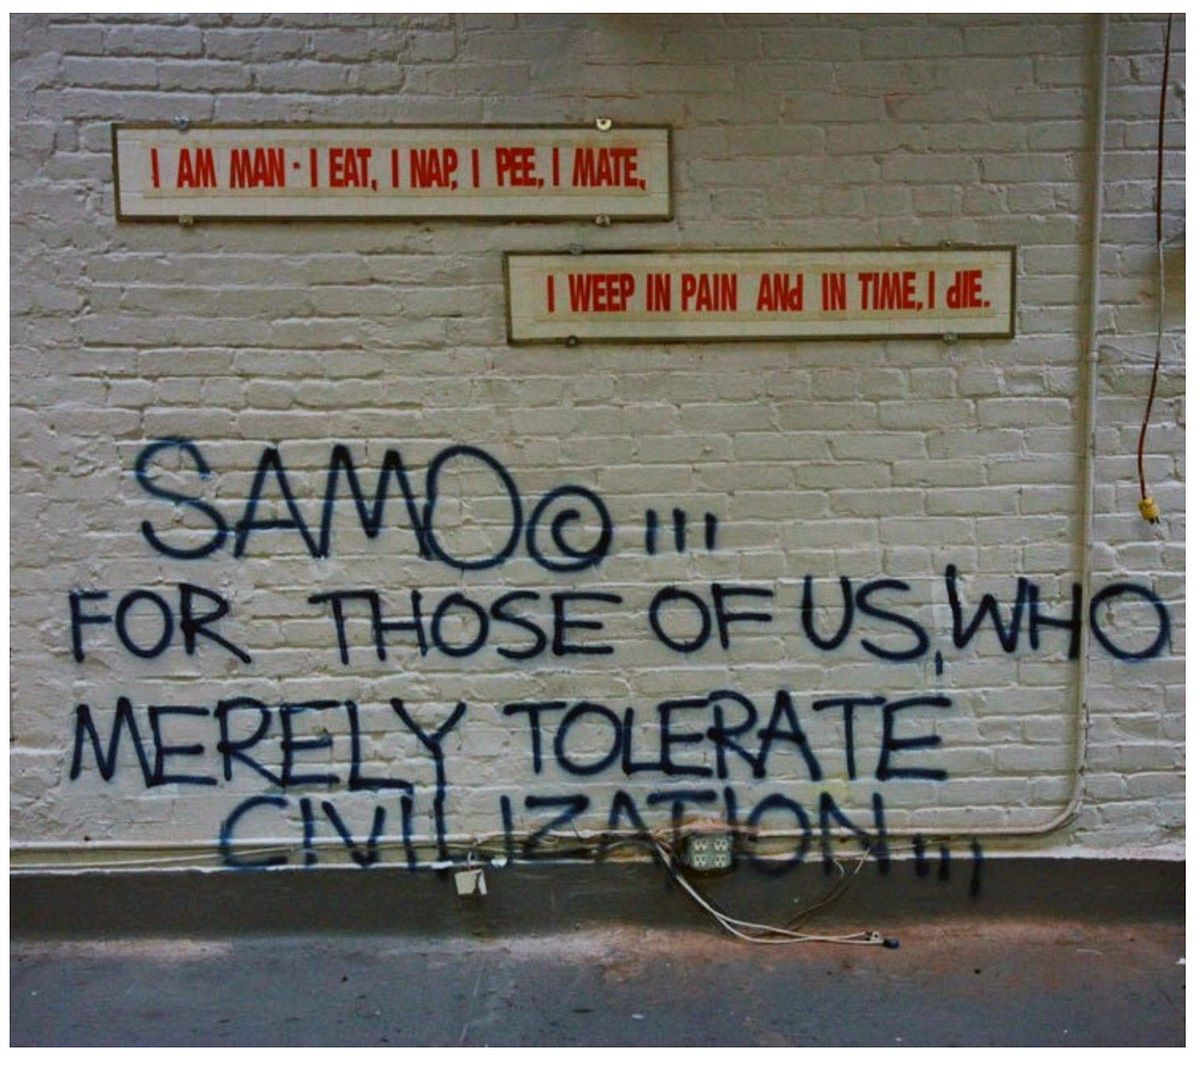 Graffiti by SAMO, AKA Basquiat.